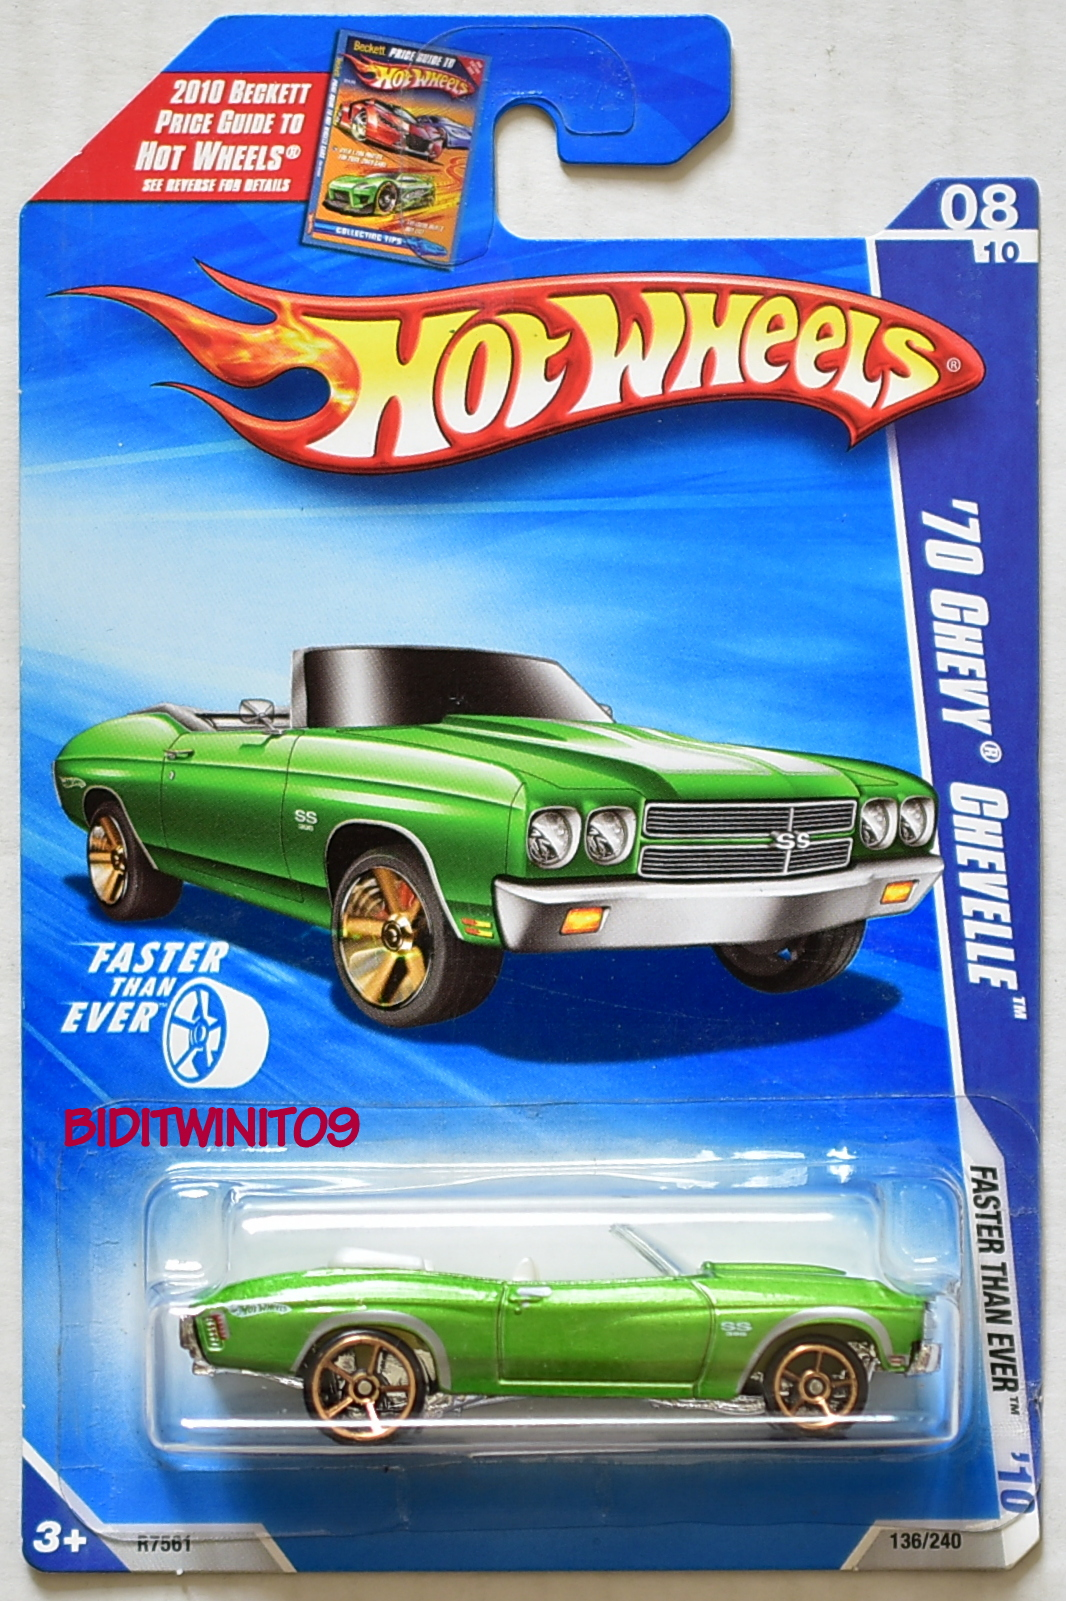 HOT WHEELS 2010 '70 CHEVY CHEVELLE FASTER T EVER 8/10 GREEN